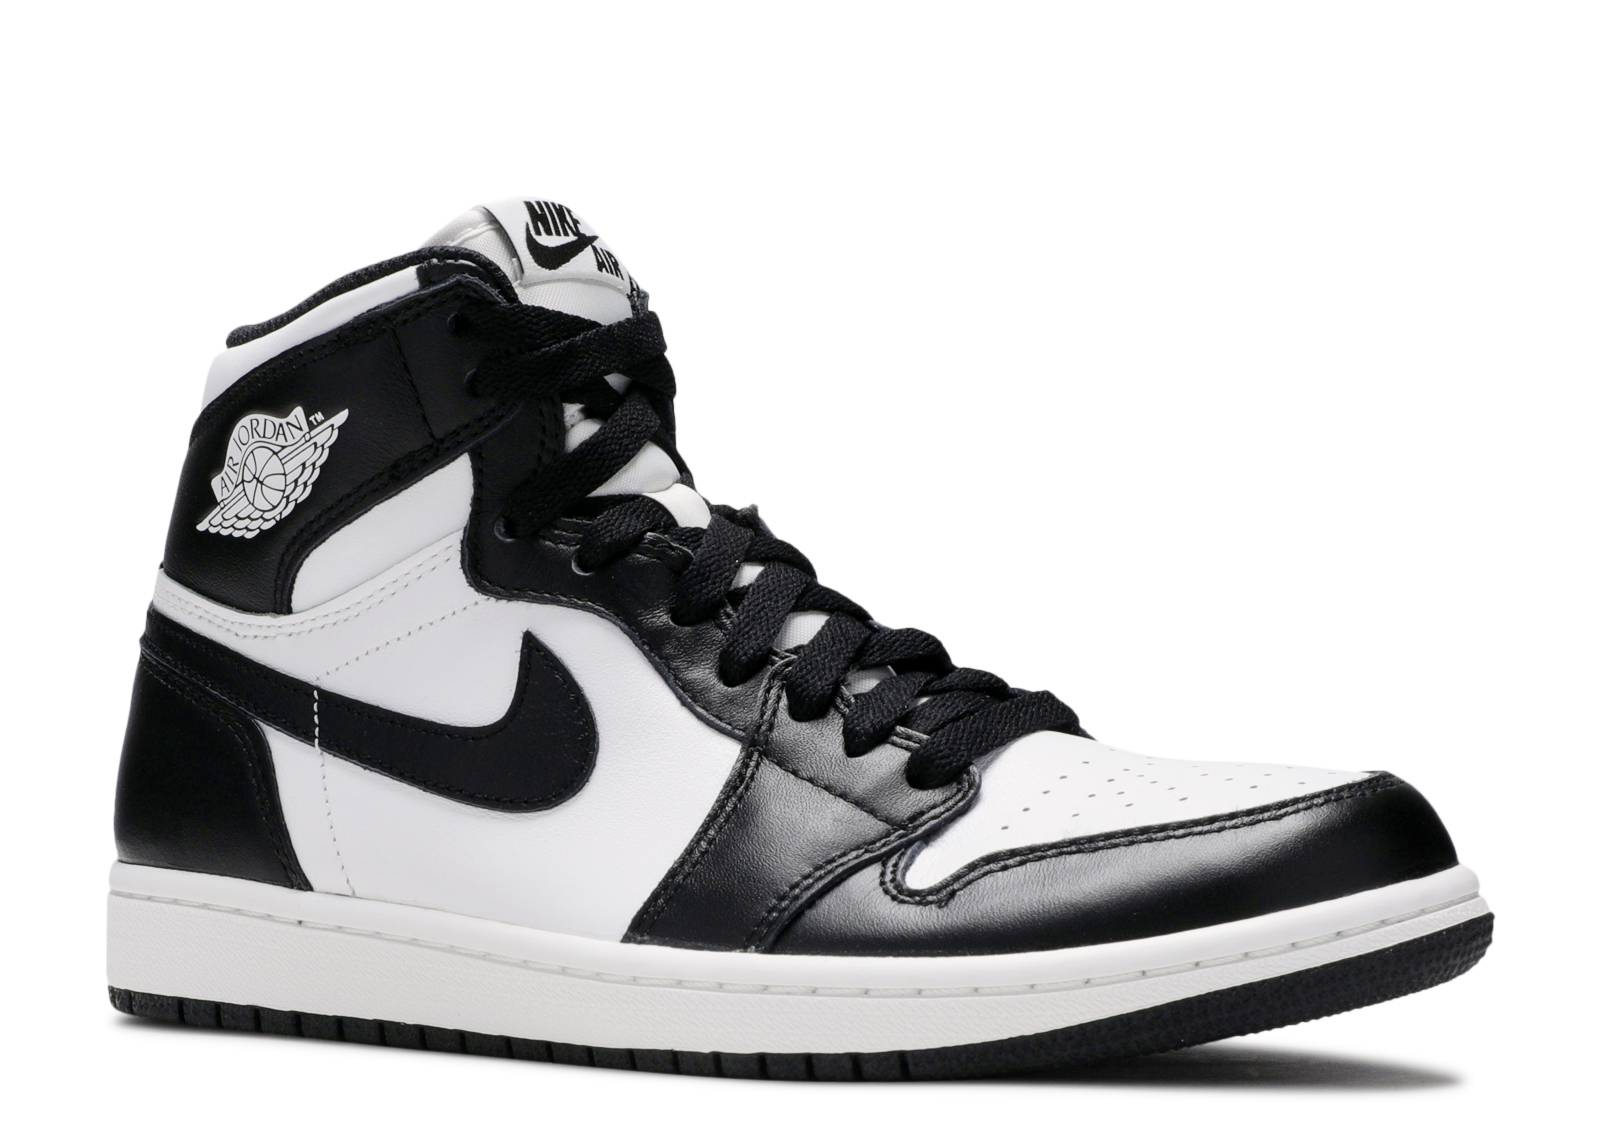 Air Jordan 1 Retro High Og - Air Jordan - 555088 010 - black white-black  9c042806a